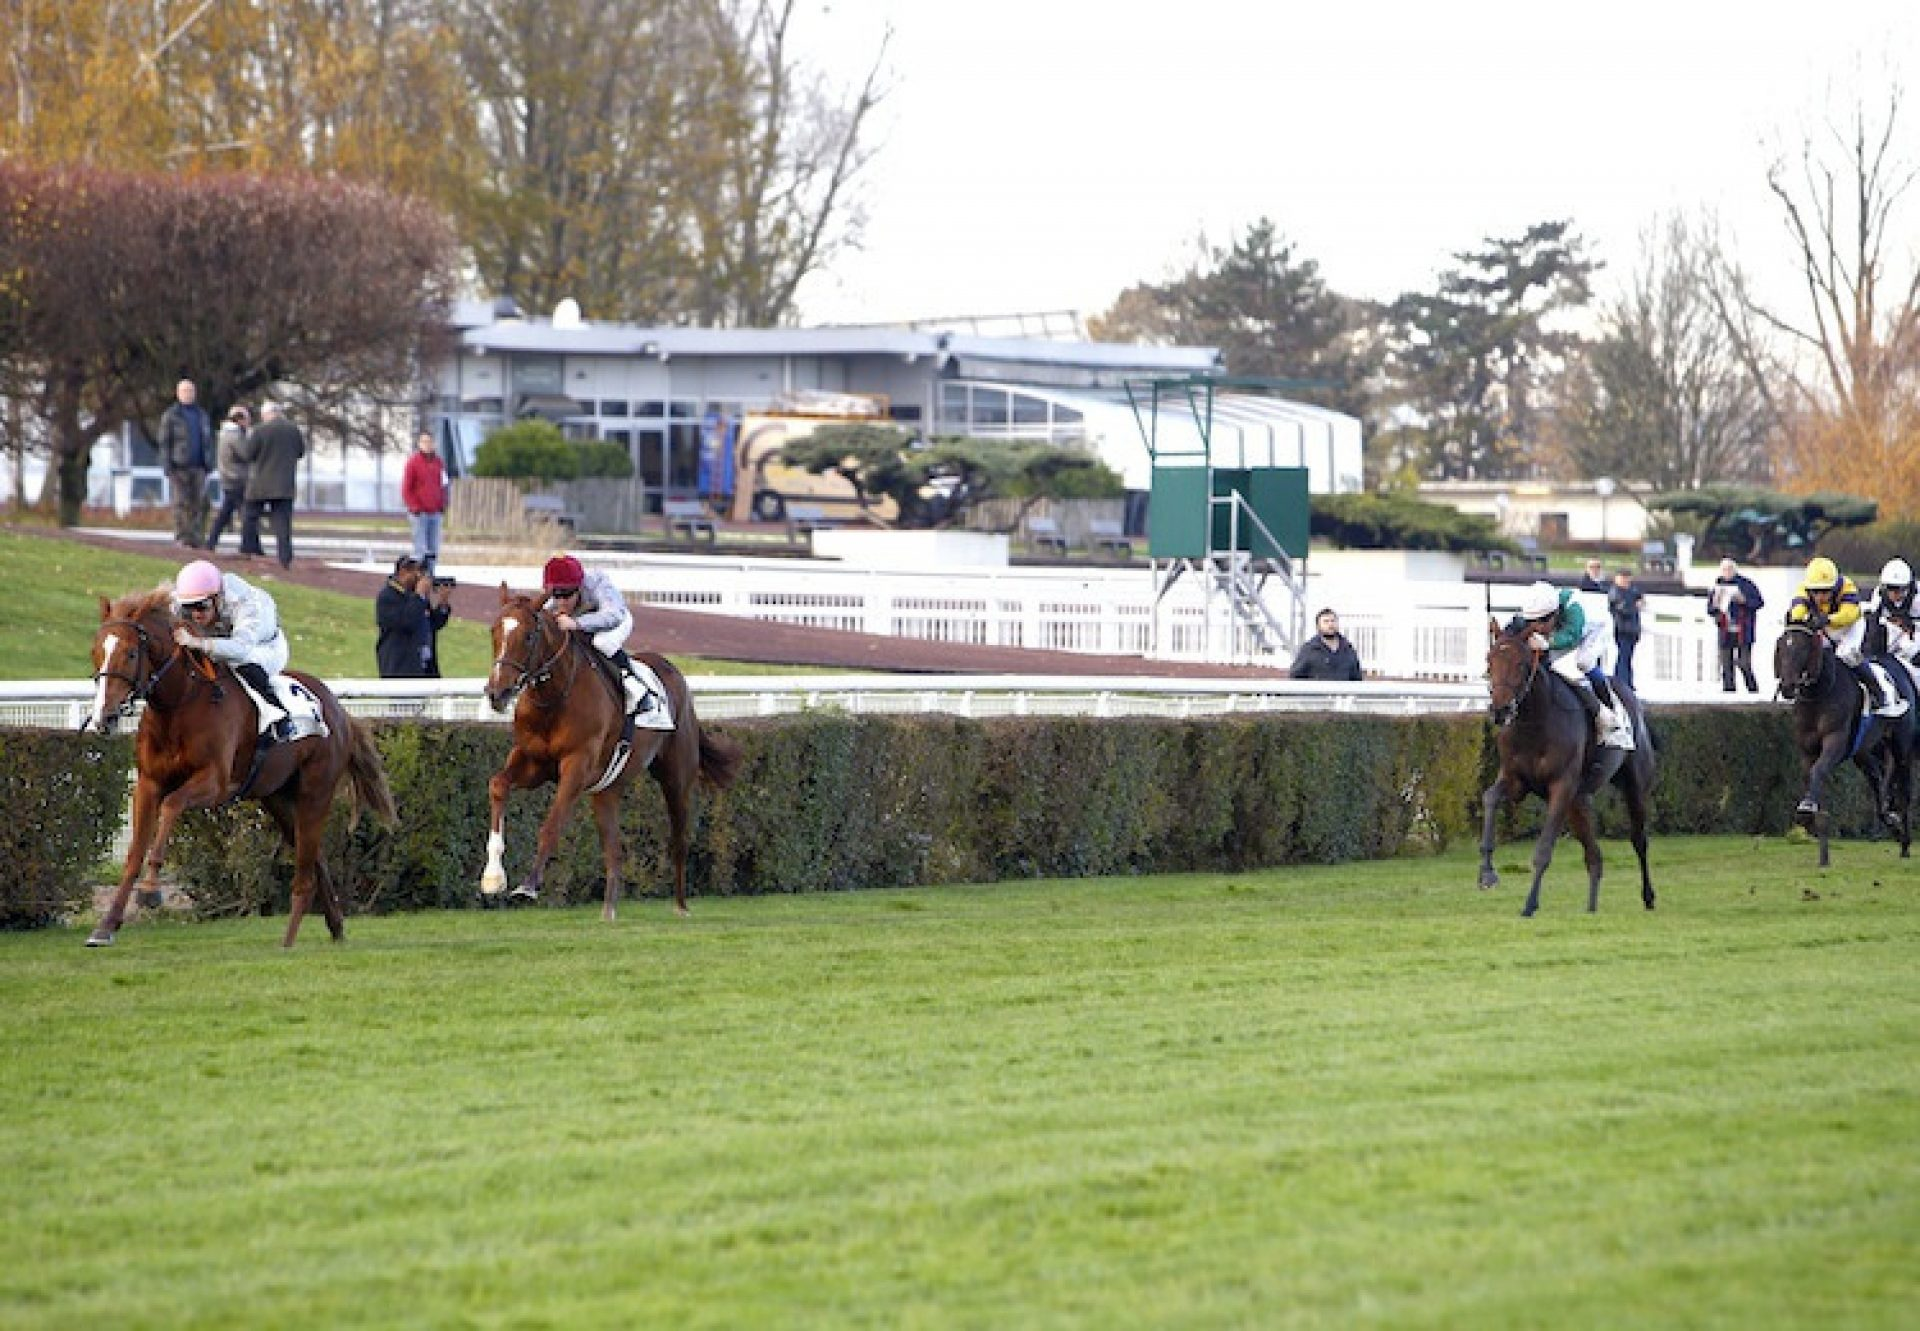 Emerald Master (Mastercraftsman) winning at Saint-Cloud